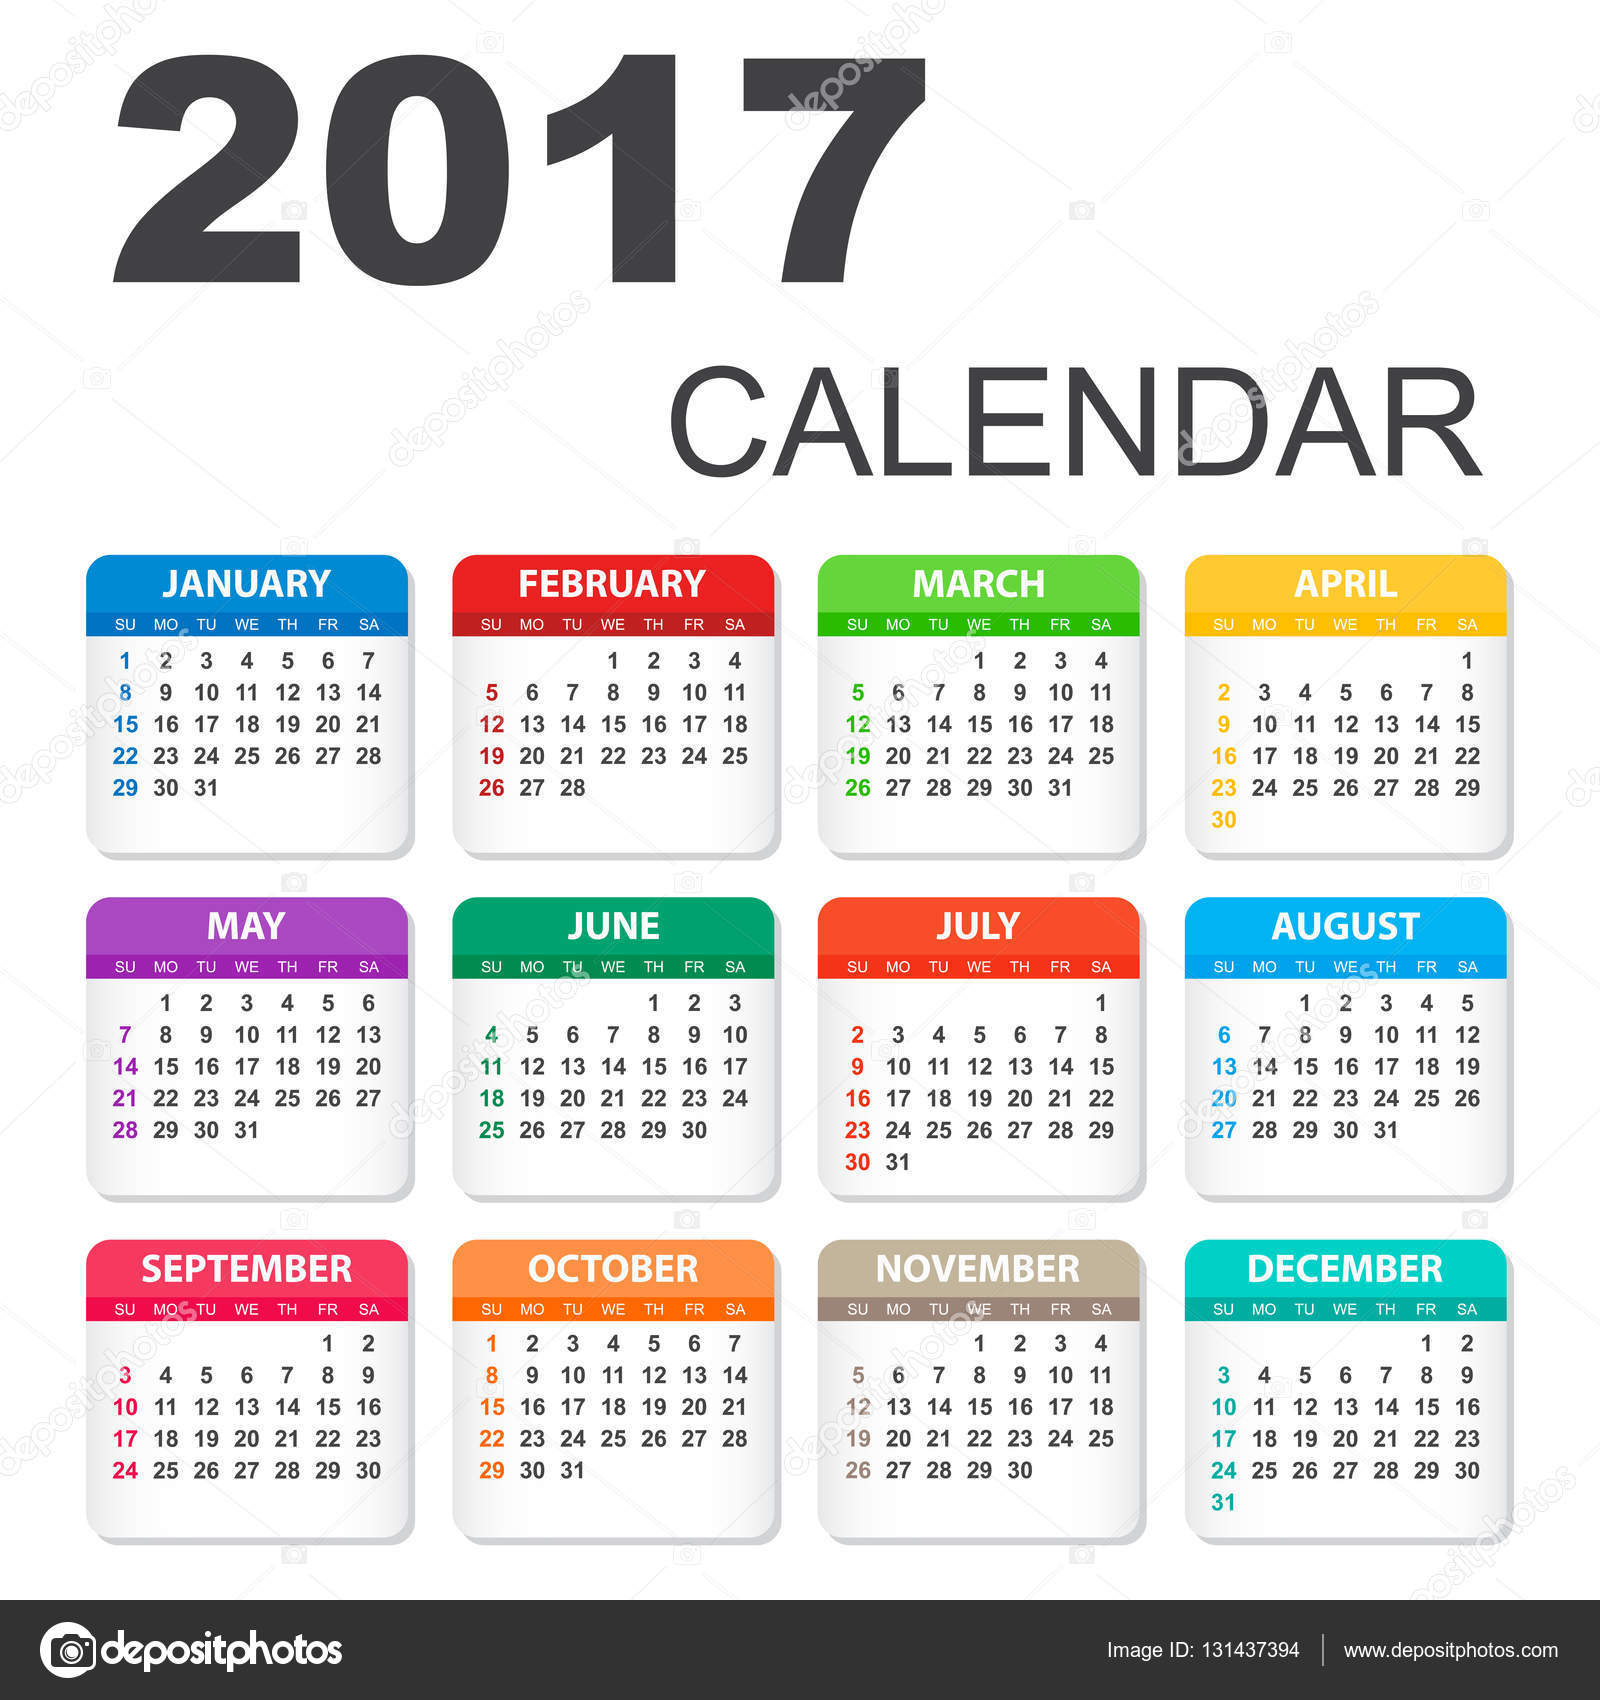 Calendar Method With Illustration : Calendar in horizontal style illustration vector